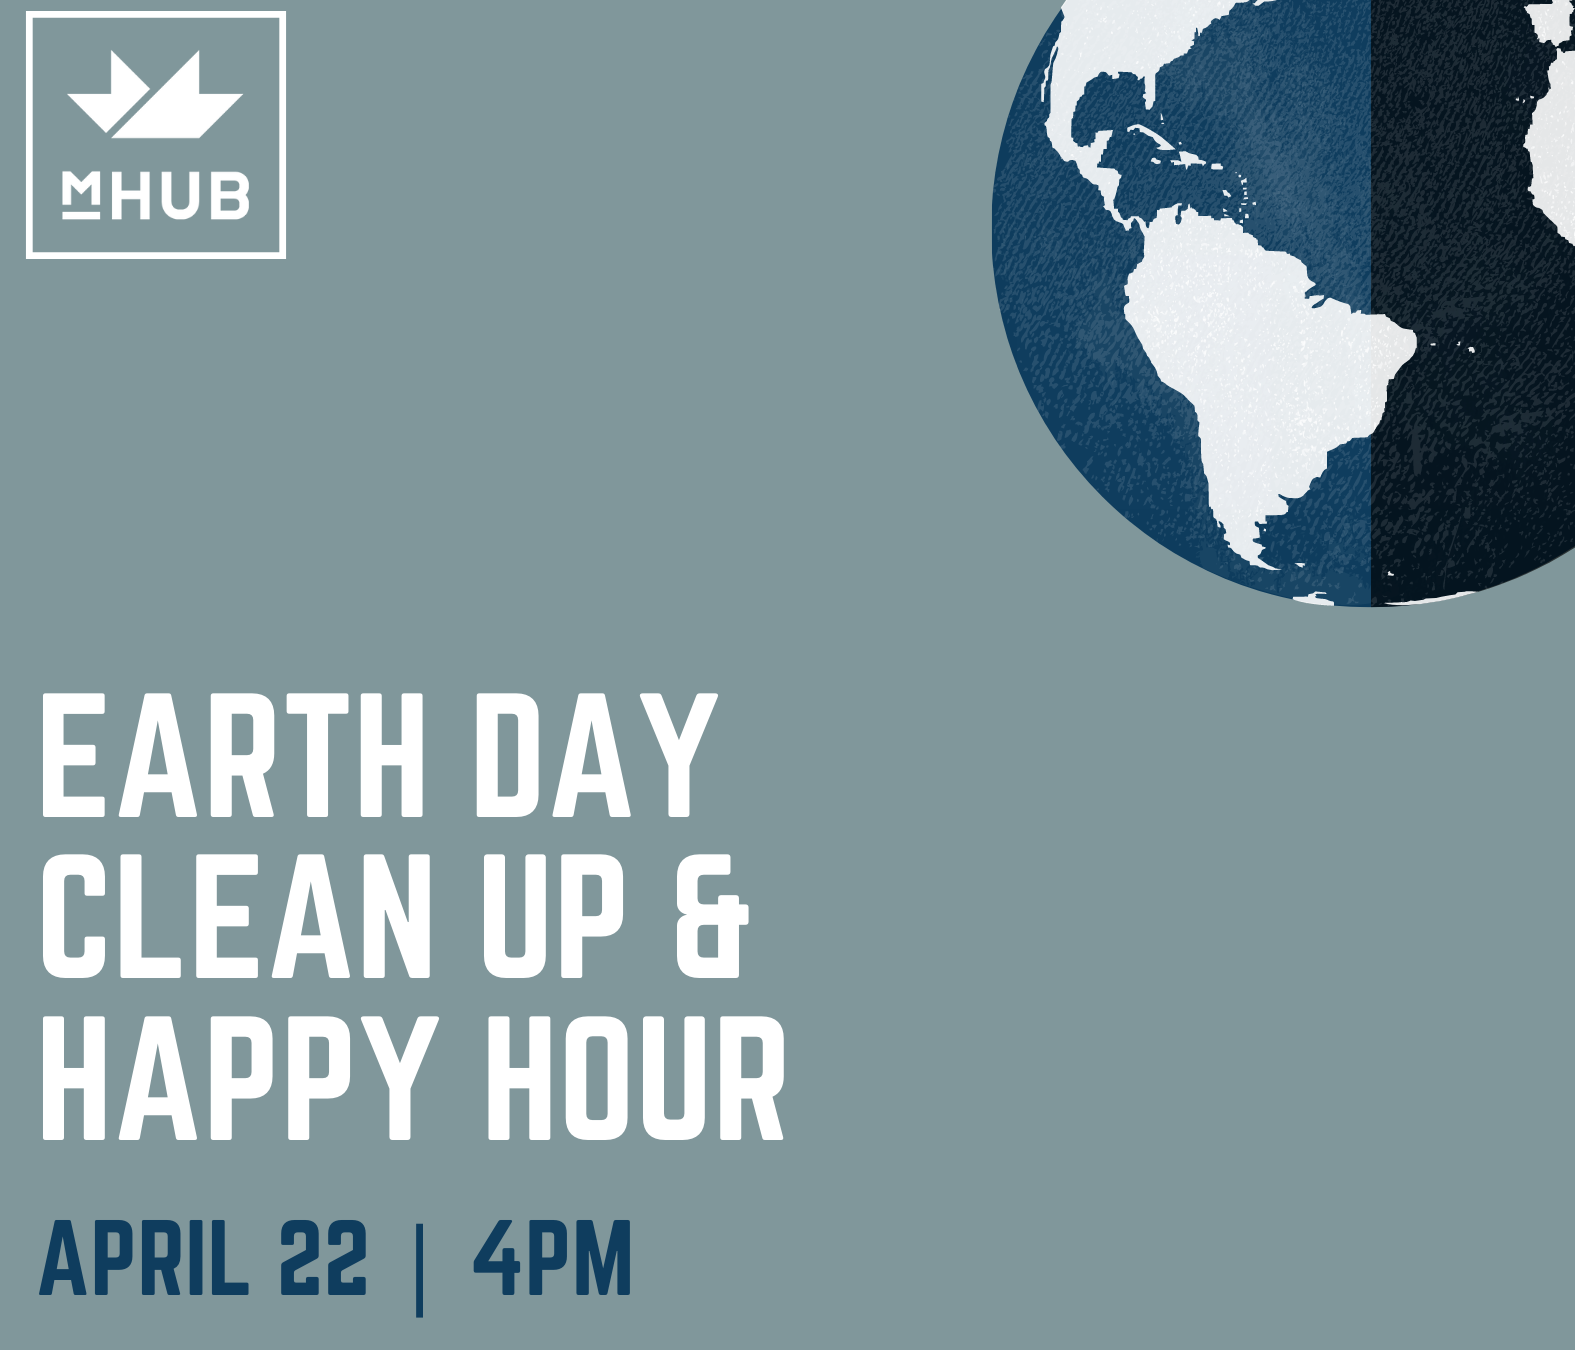 Earth Day Clean-Up & Happy Hour